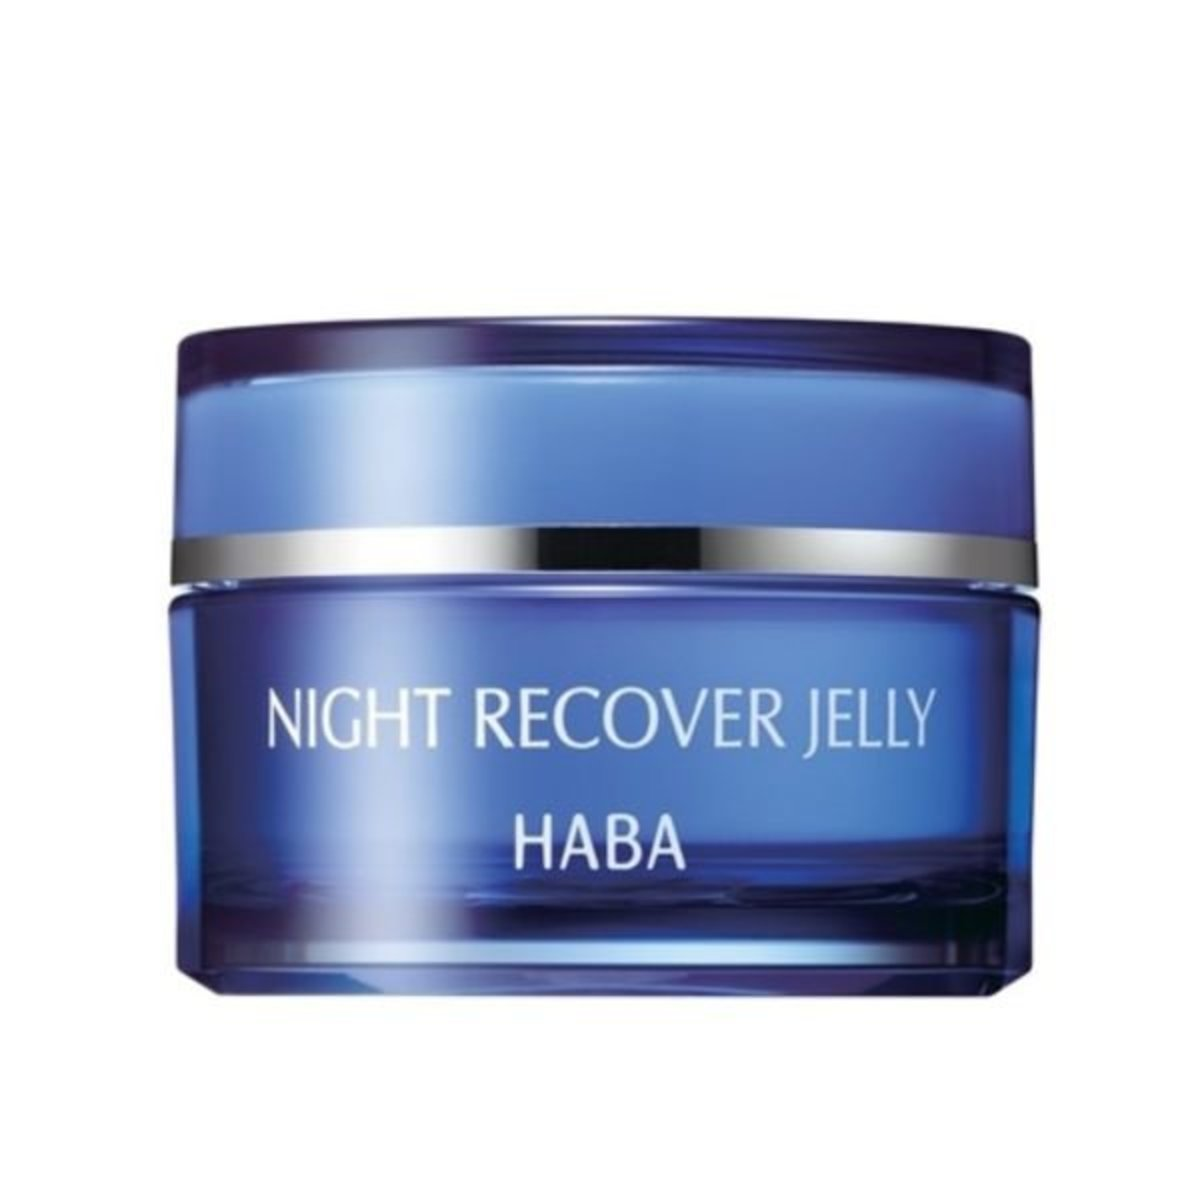 Night Recover Jelly 50G  (Parallel Import)